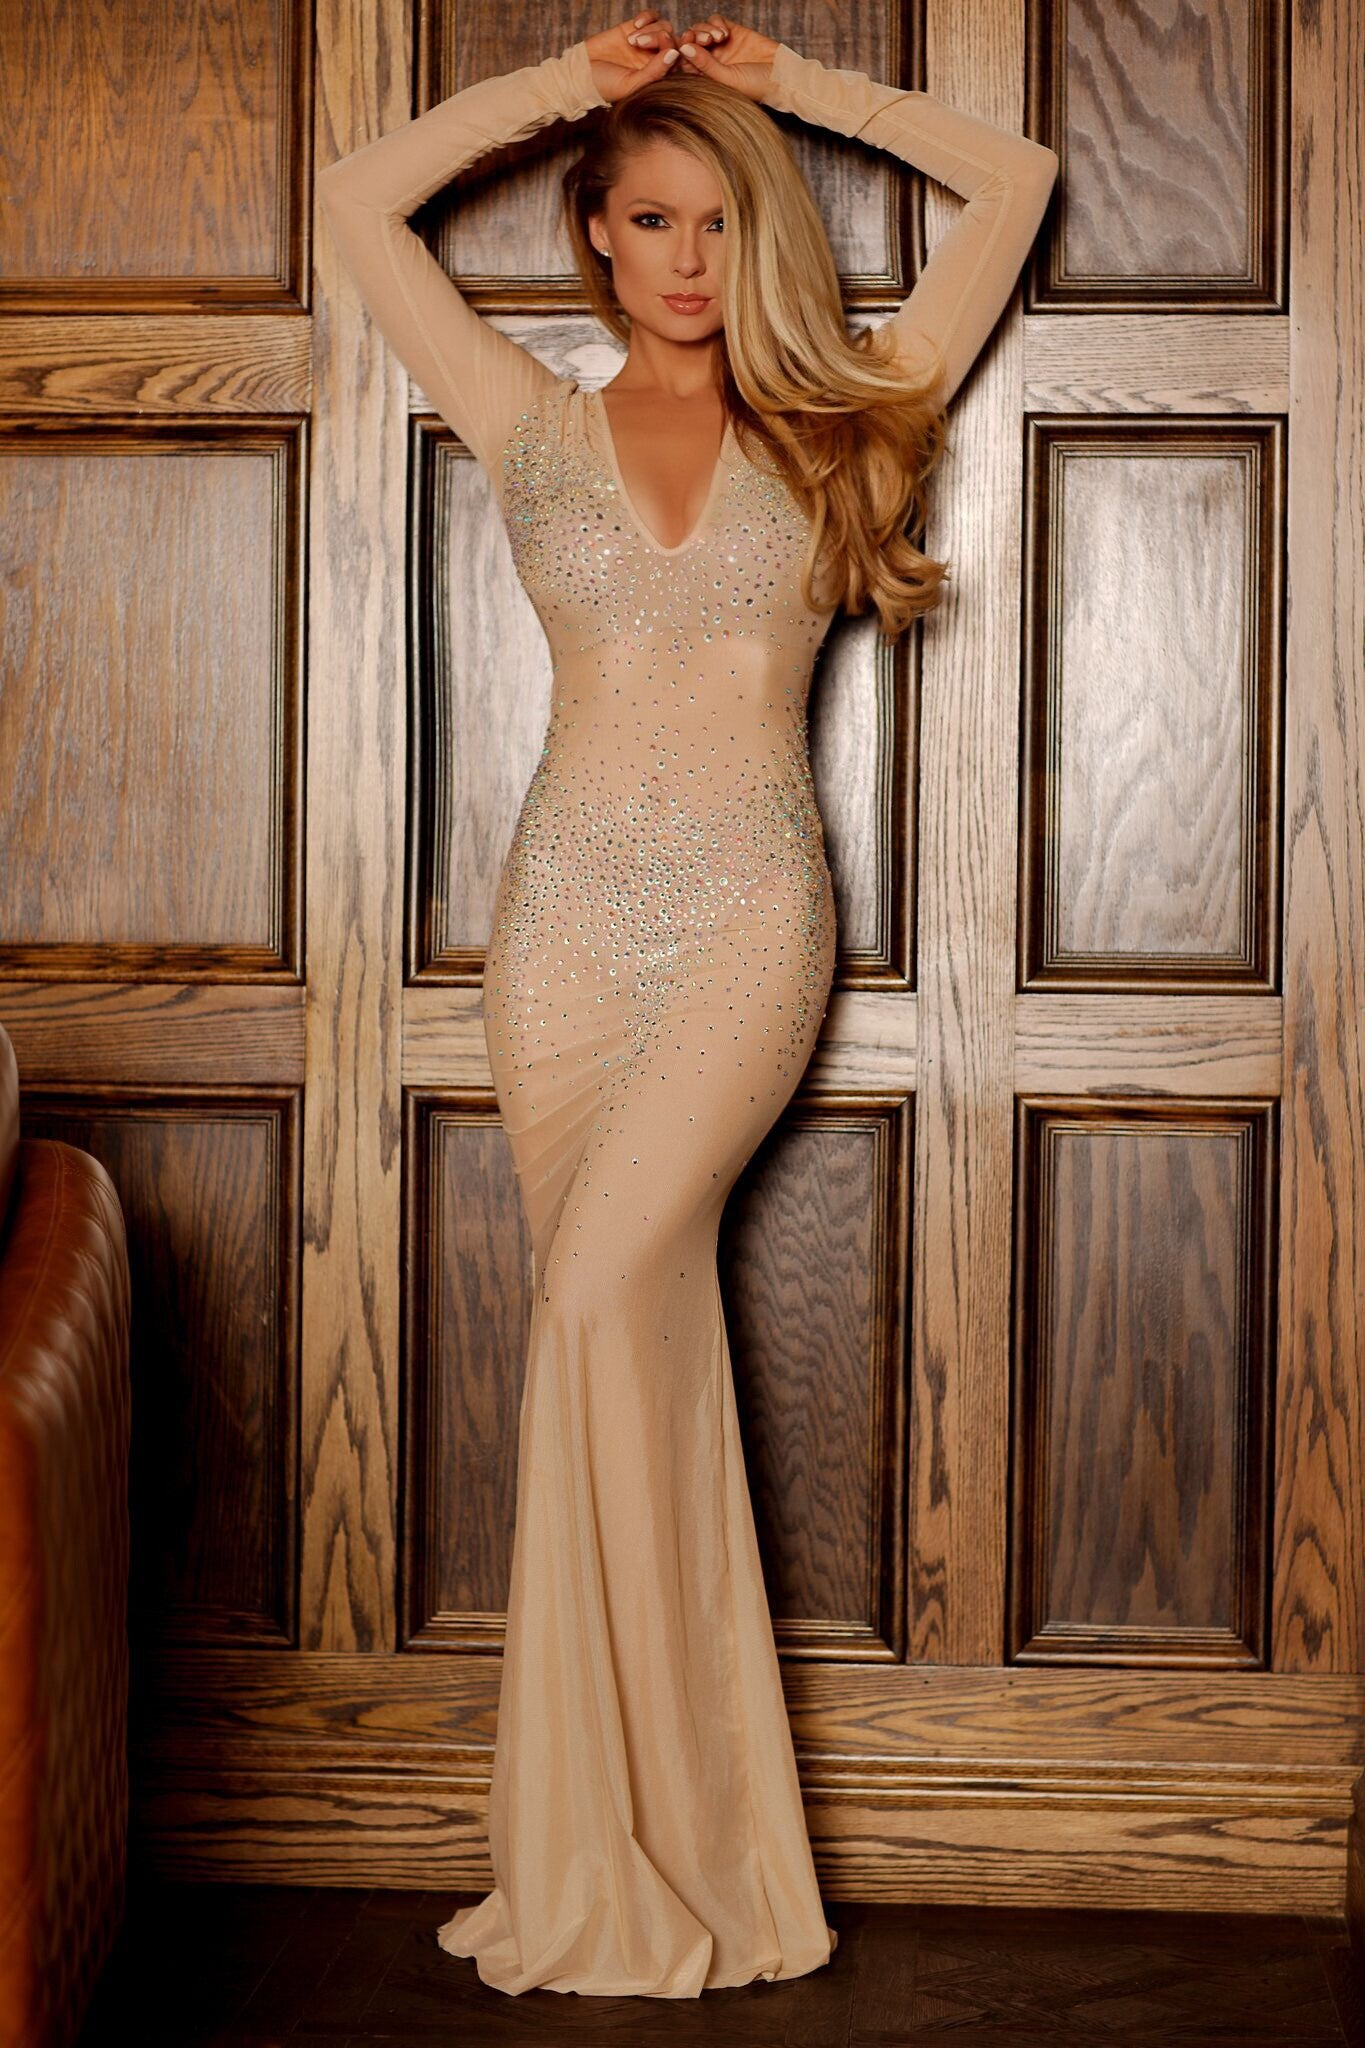 CHARLIE CRYSTAL GOWN IN NUDE